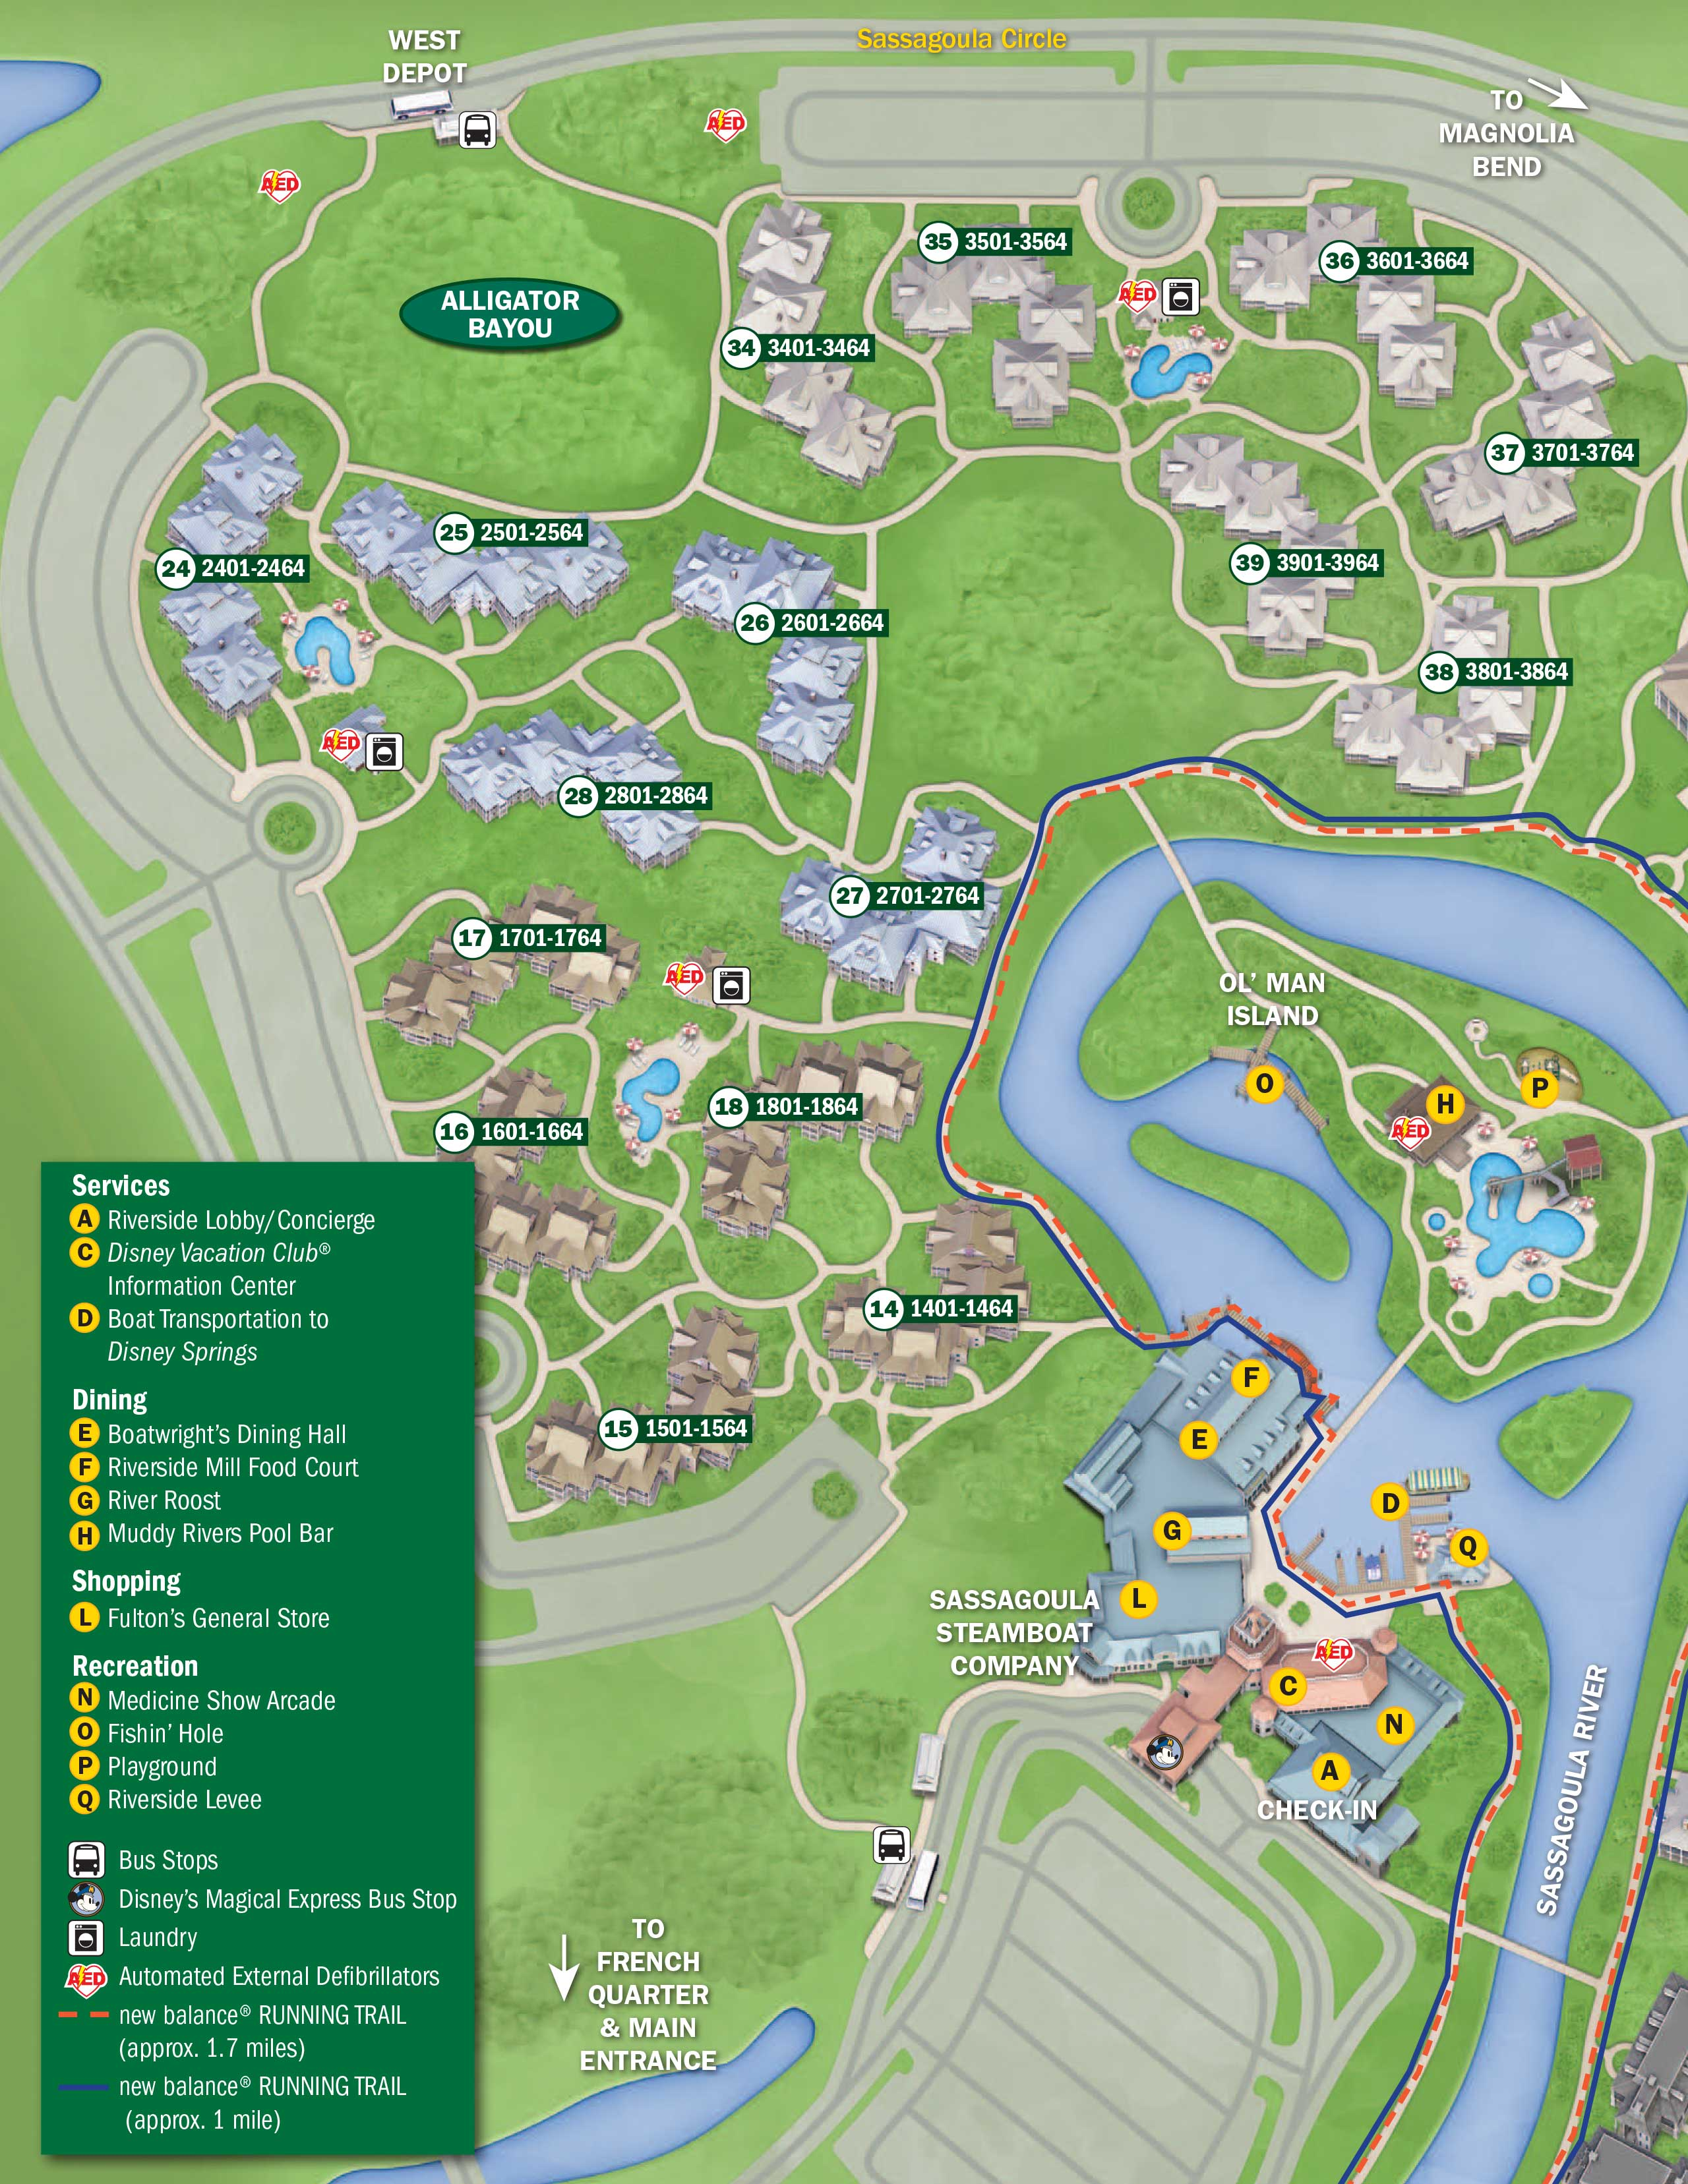 April 2017 Walt Disney World Resort Hotel Maps - 8 Of 33